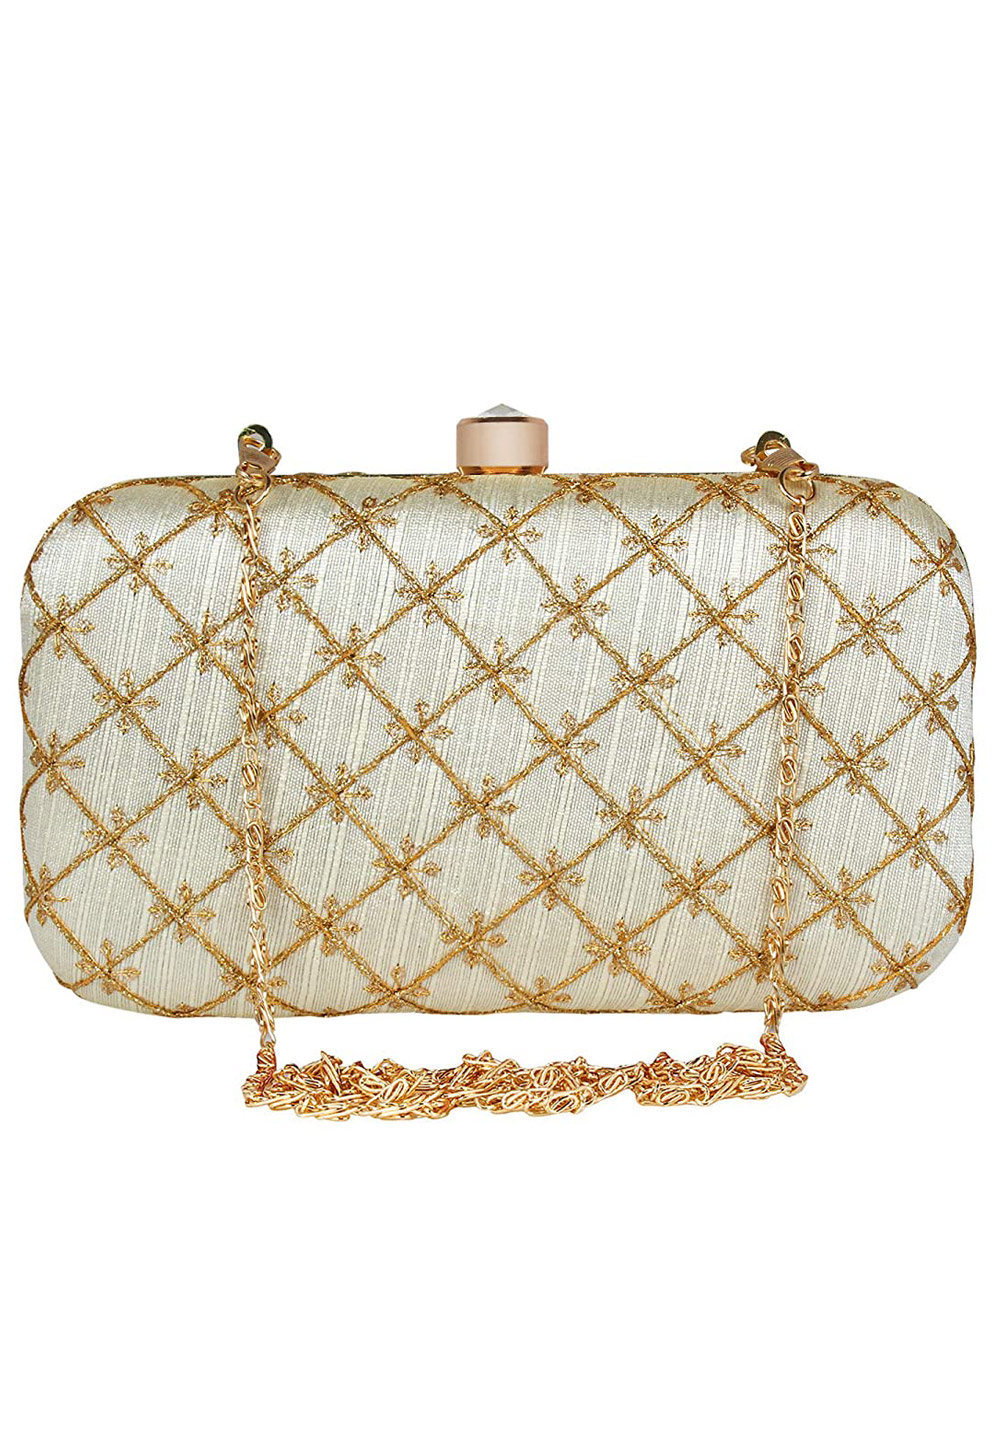 Off White Synthetic Embroidered Clutch 225779